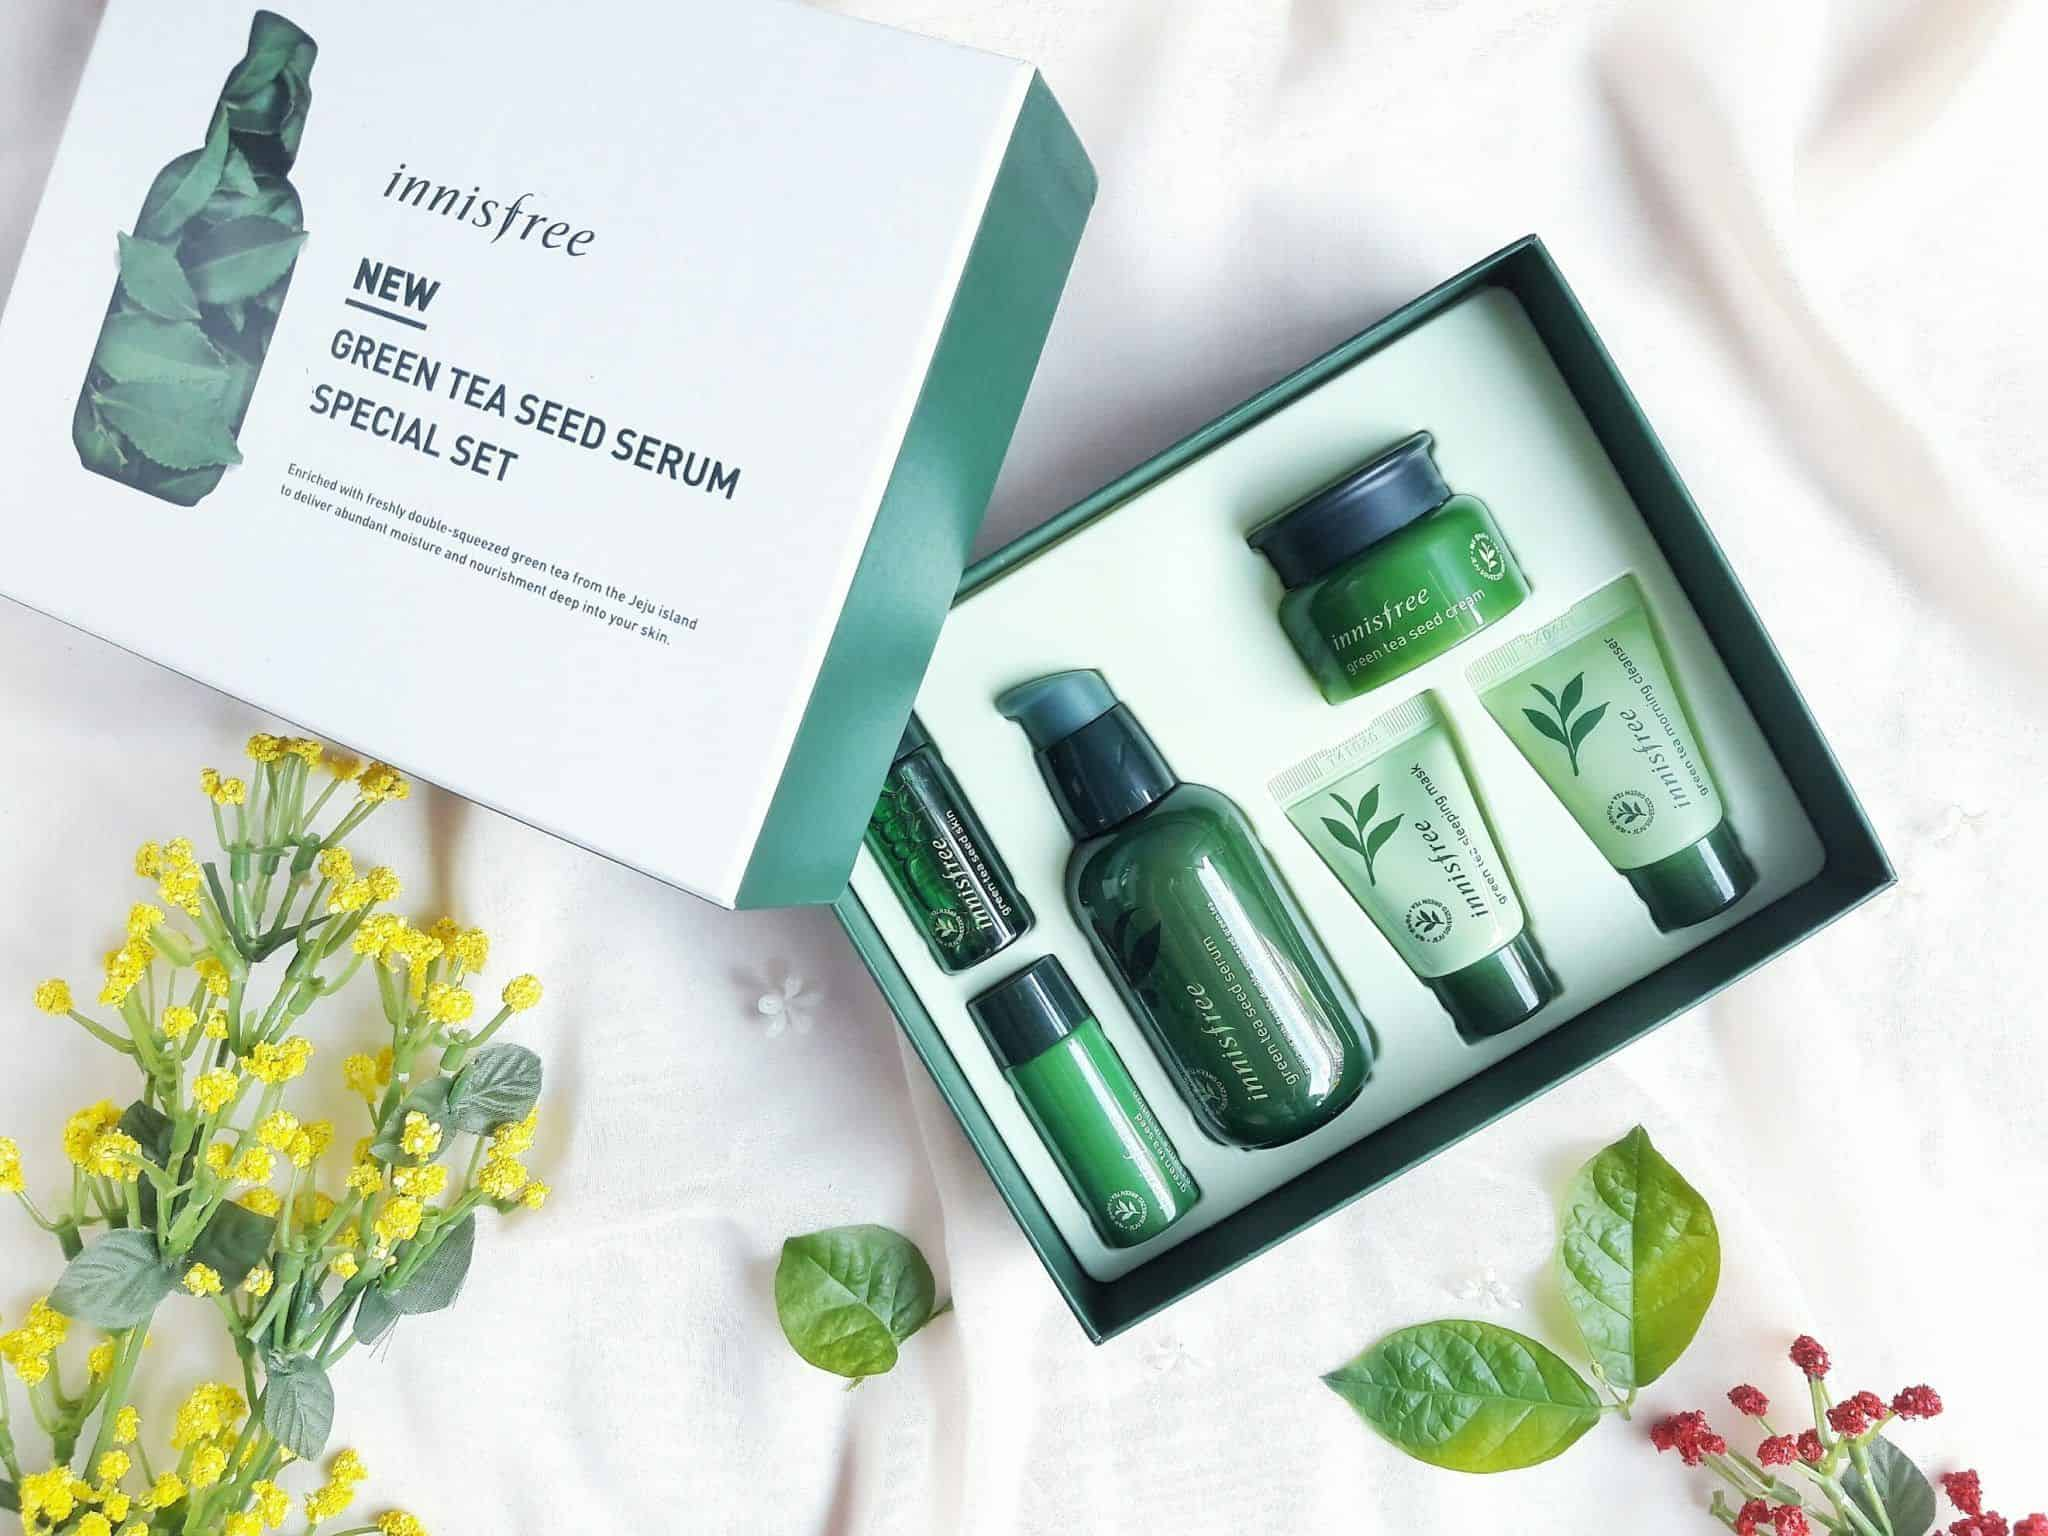 Innisfree Green Tea Seed 2018